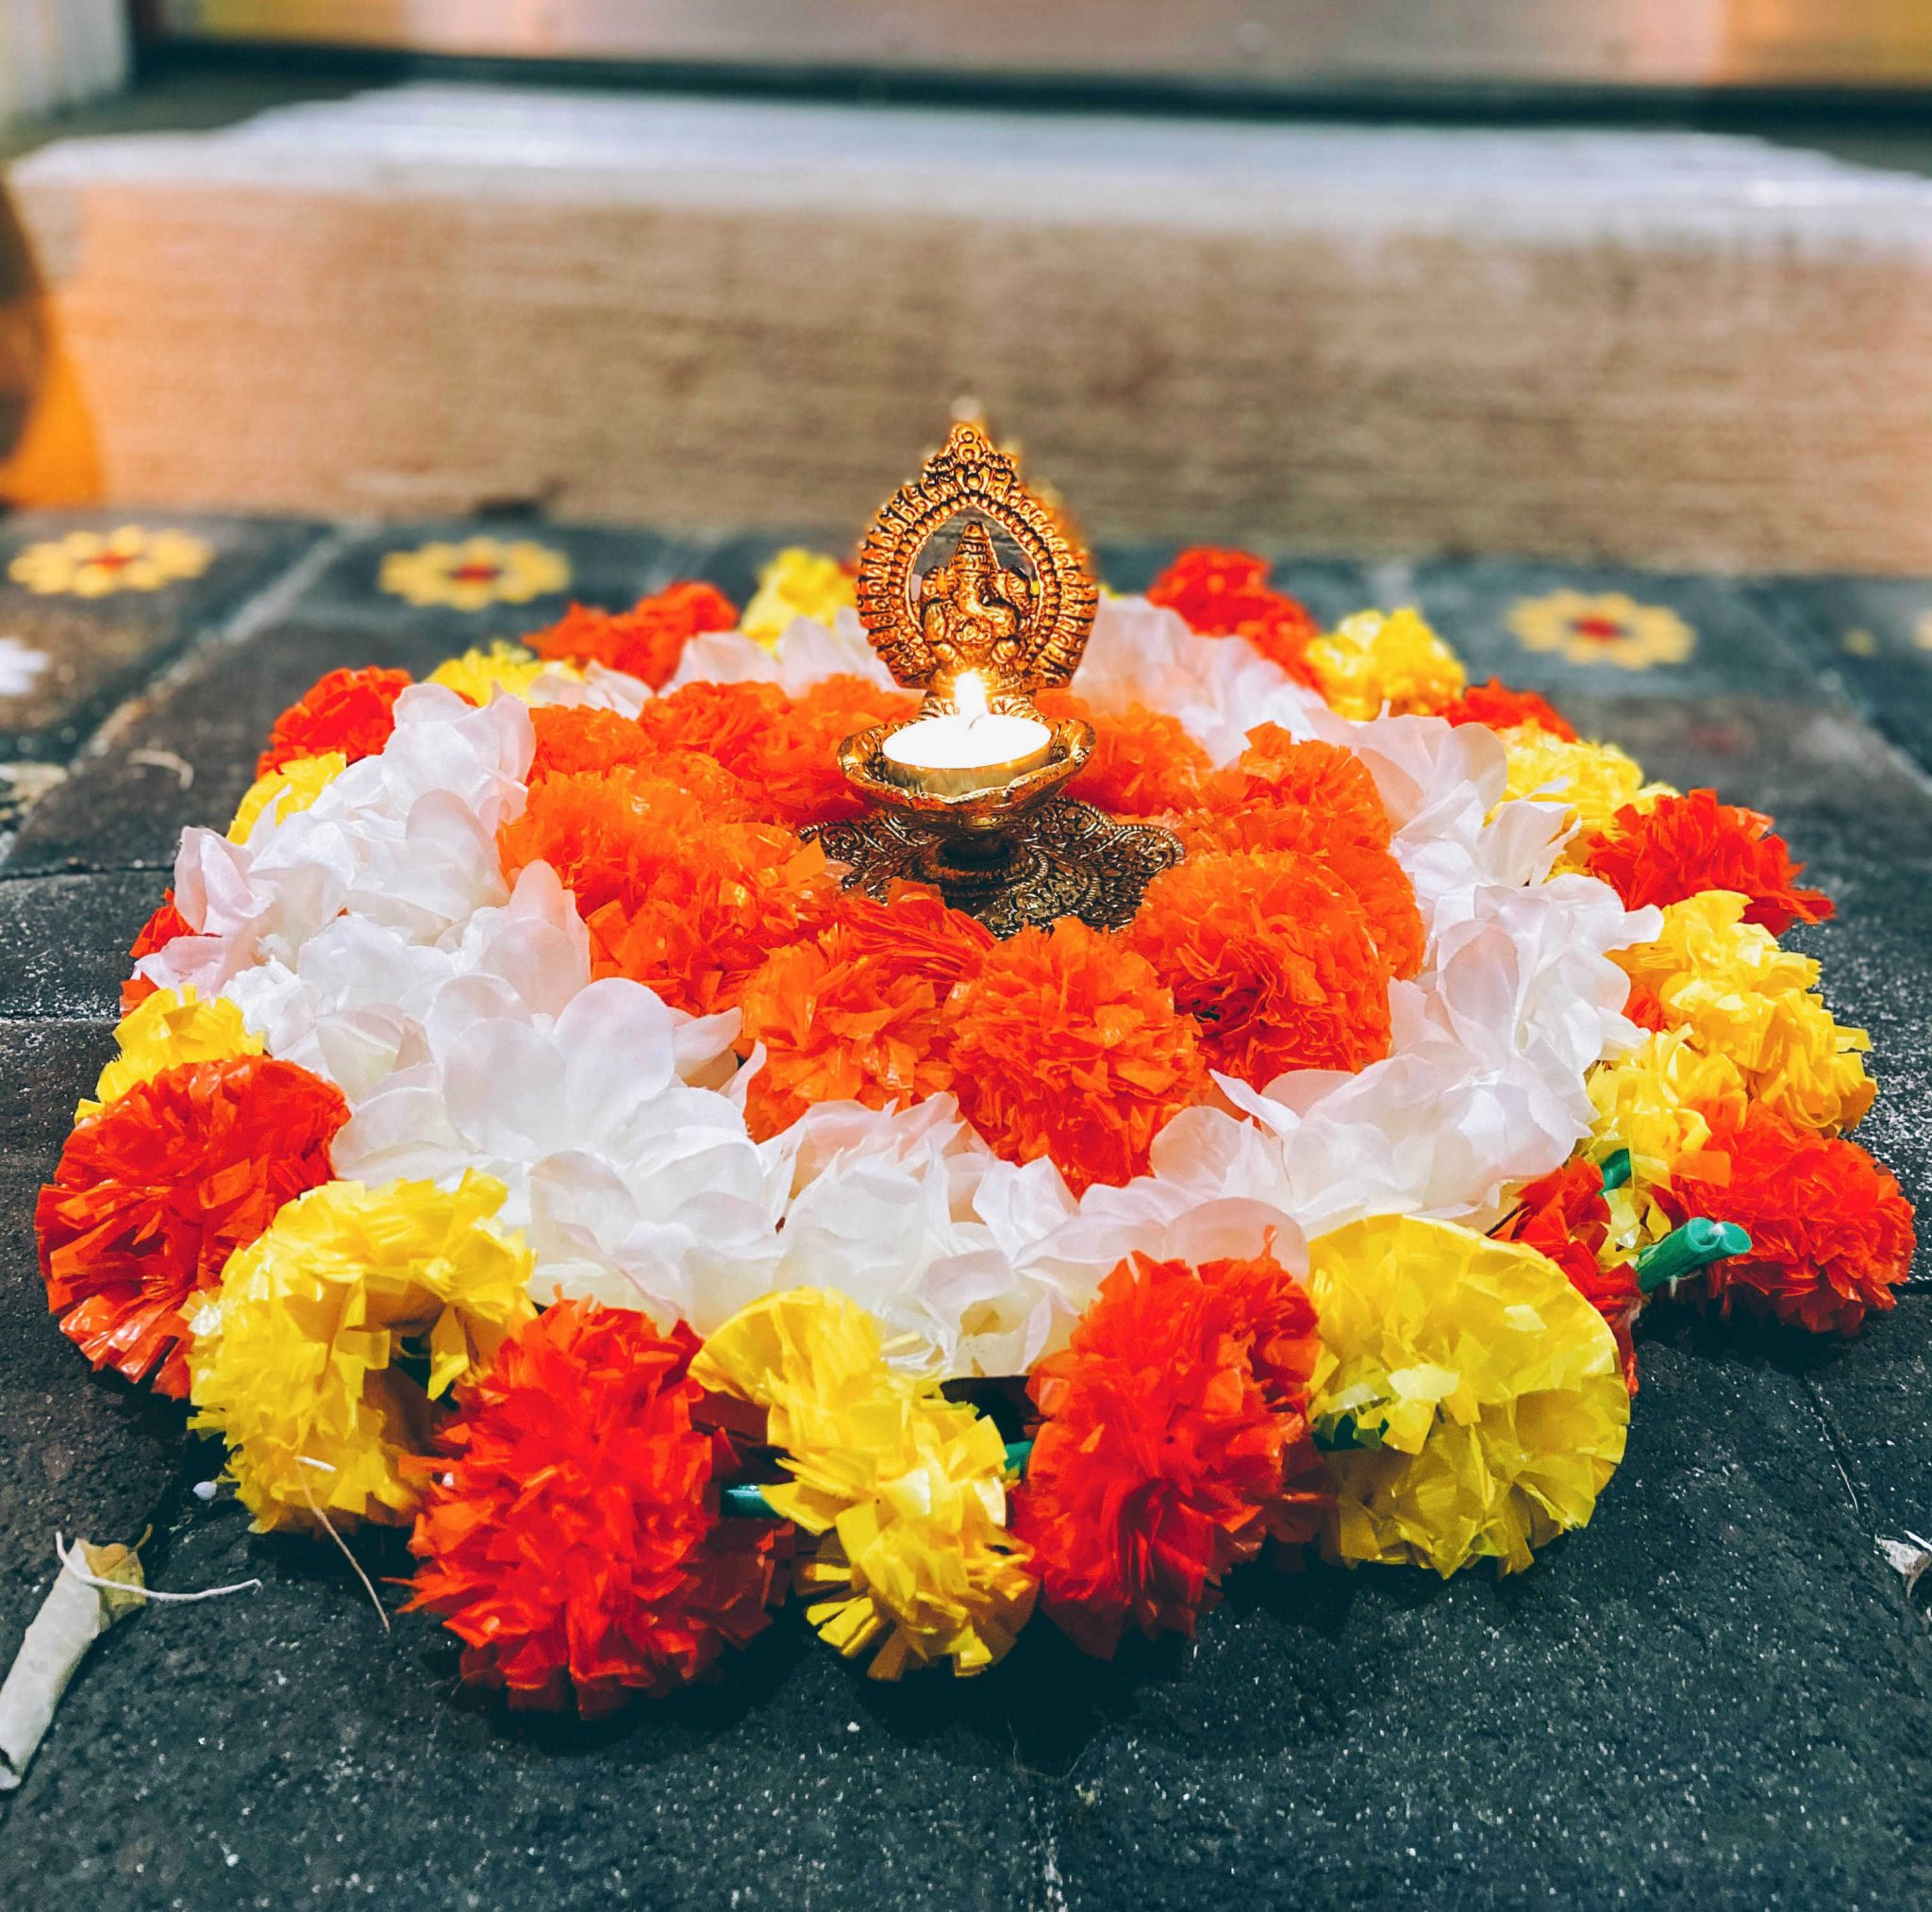 Simple Diwali Decoration ideas featured by top MD lifestyle blogger, Dreaming Loud |Diwali Decoration Ideas: image of a front door and porch decorated with Chrysanthemum garlands, Wisteria garlands,Marigold Garlands,Ganesh Diya, Rangoli Stencil, Rangoli Sand Colors, and Clay diyas.